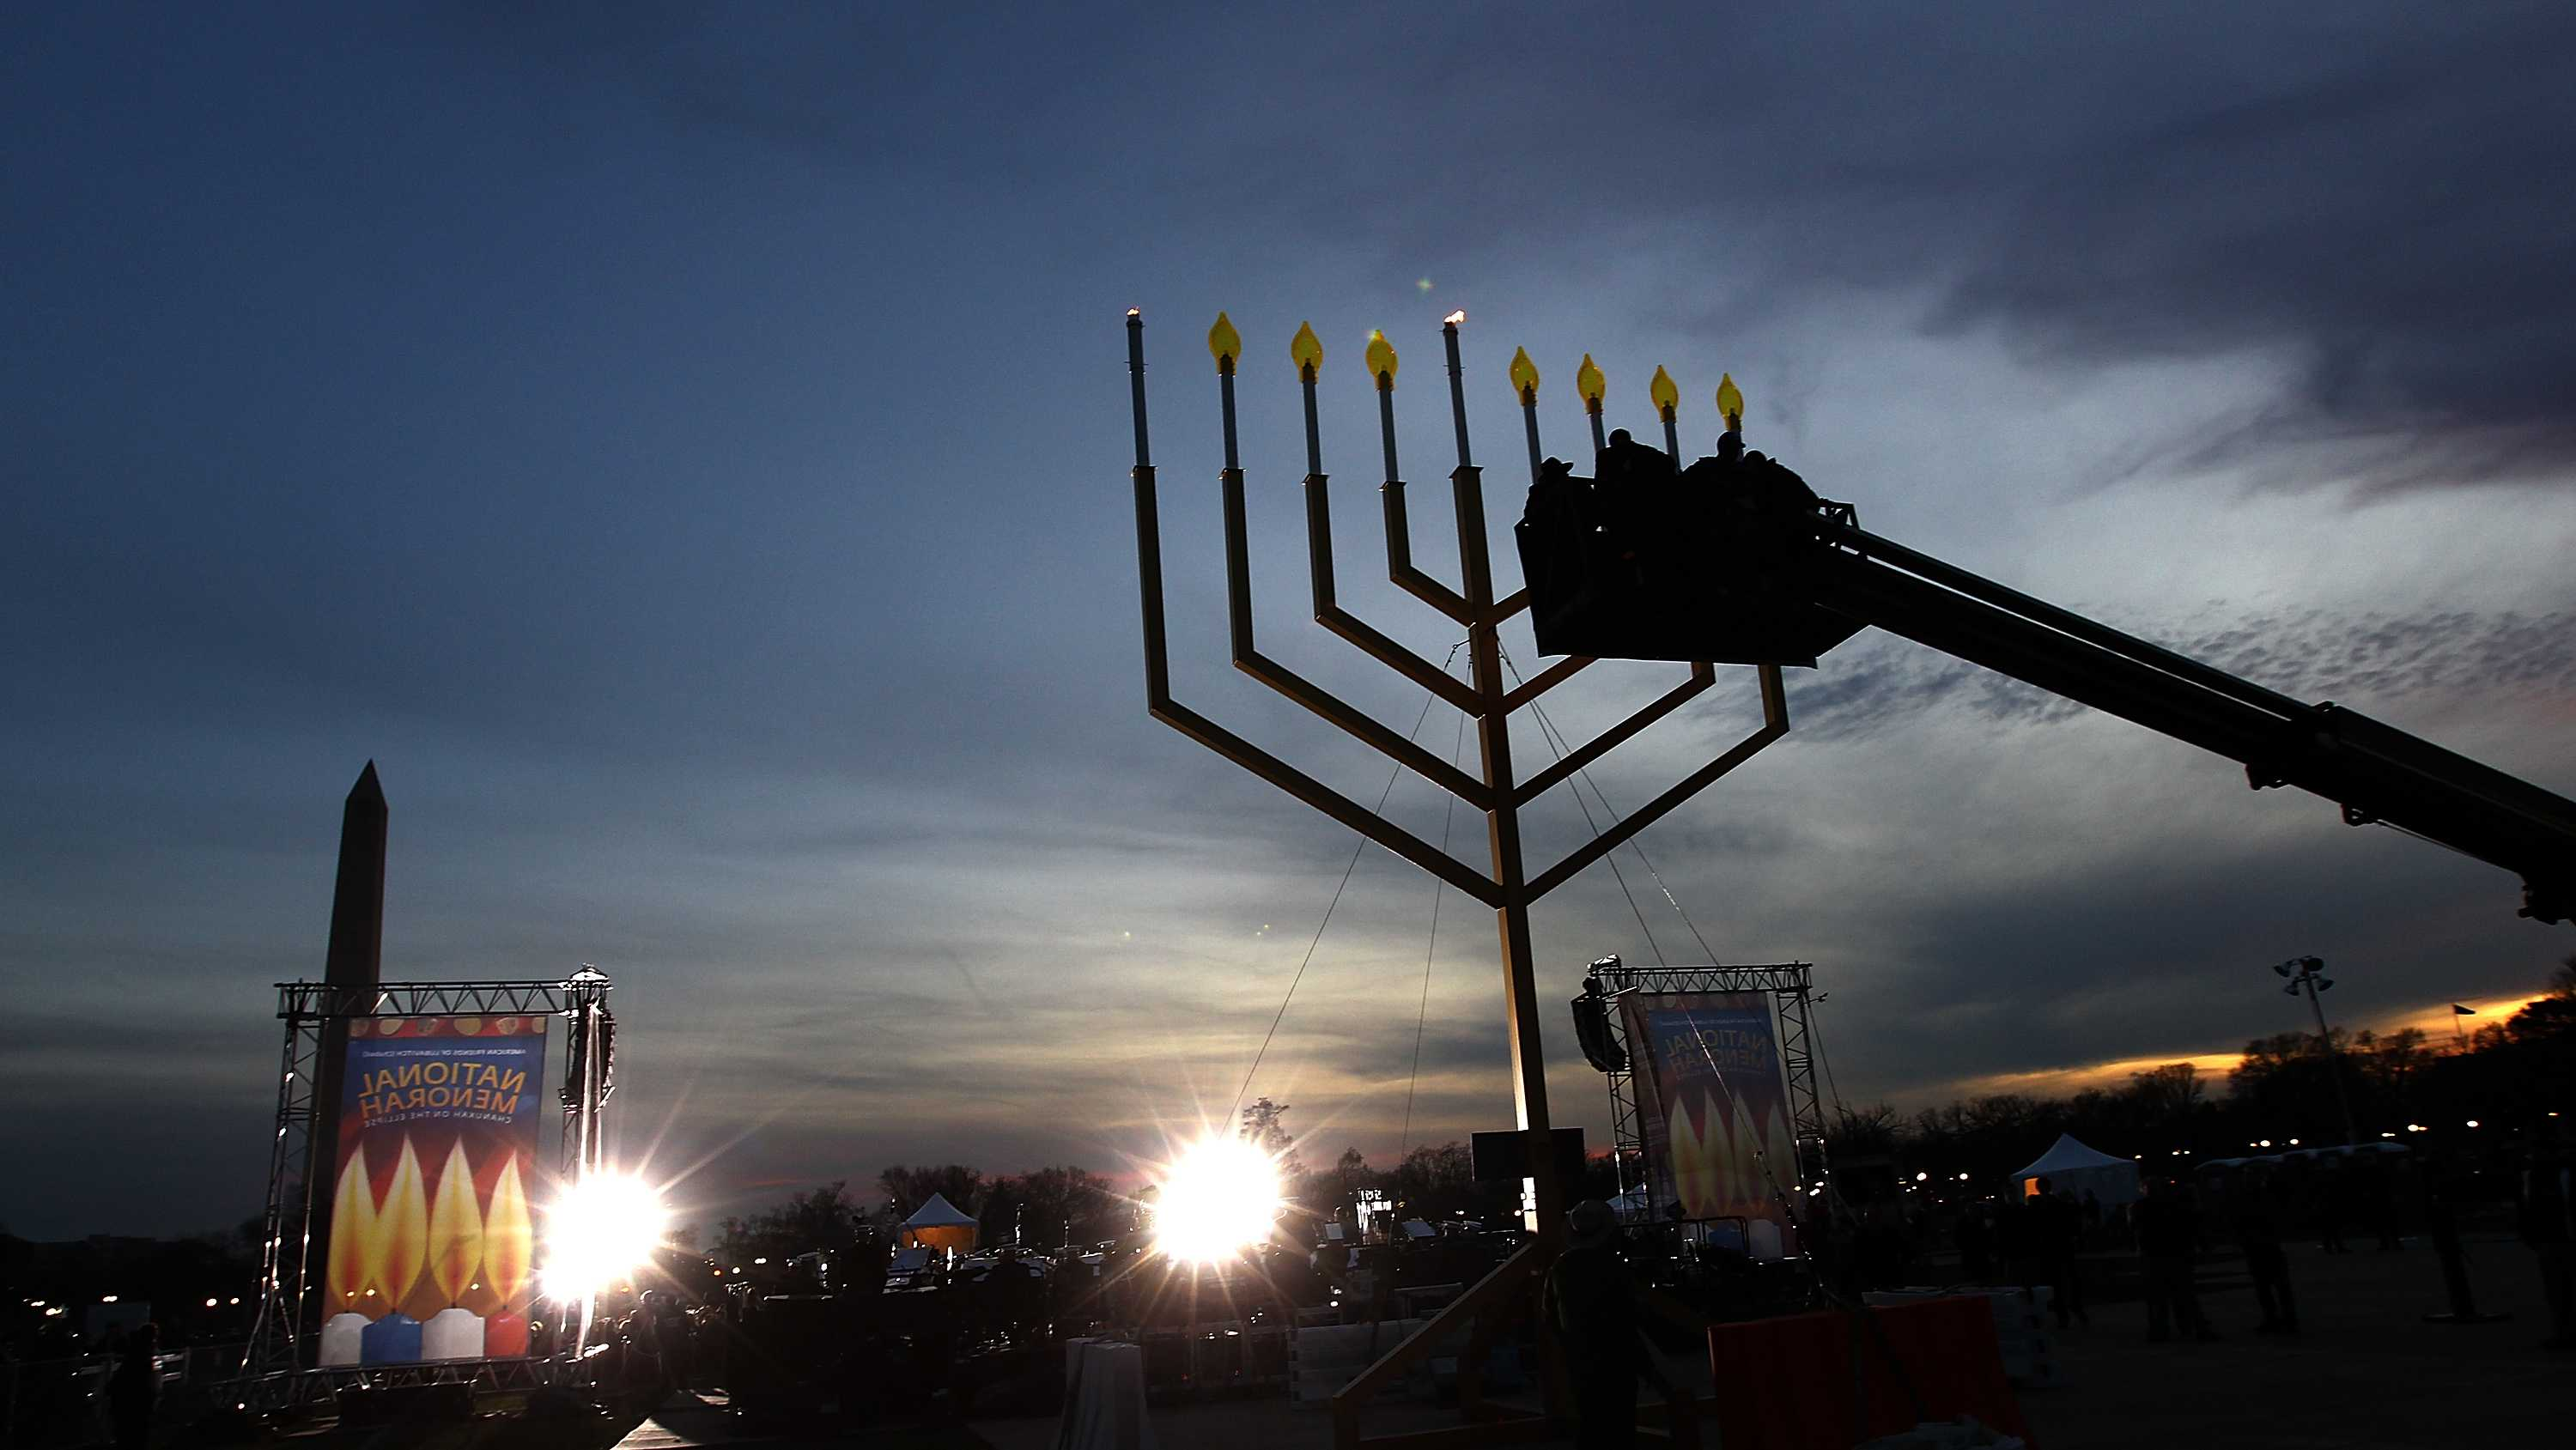 The National Menorah is lit for the first night of Hanukkah on the National Mall December 20, 2010 in Washington DC. Hanukkah, also known as the Festival of Lights, is an eight day Jewish holiday marking the rededication of the Holy Temple in Jerusalem. (Photo by Win McNamee/Getty Images)